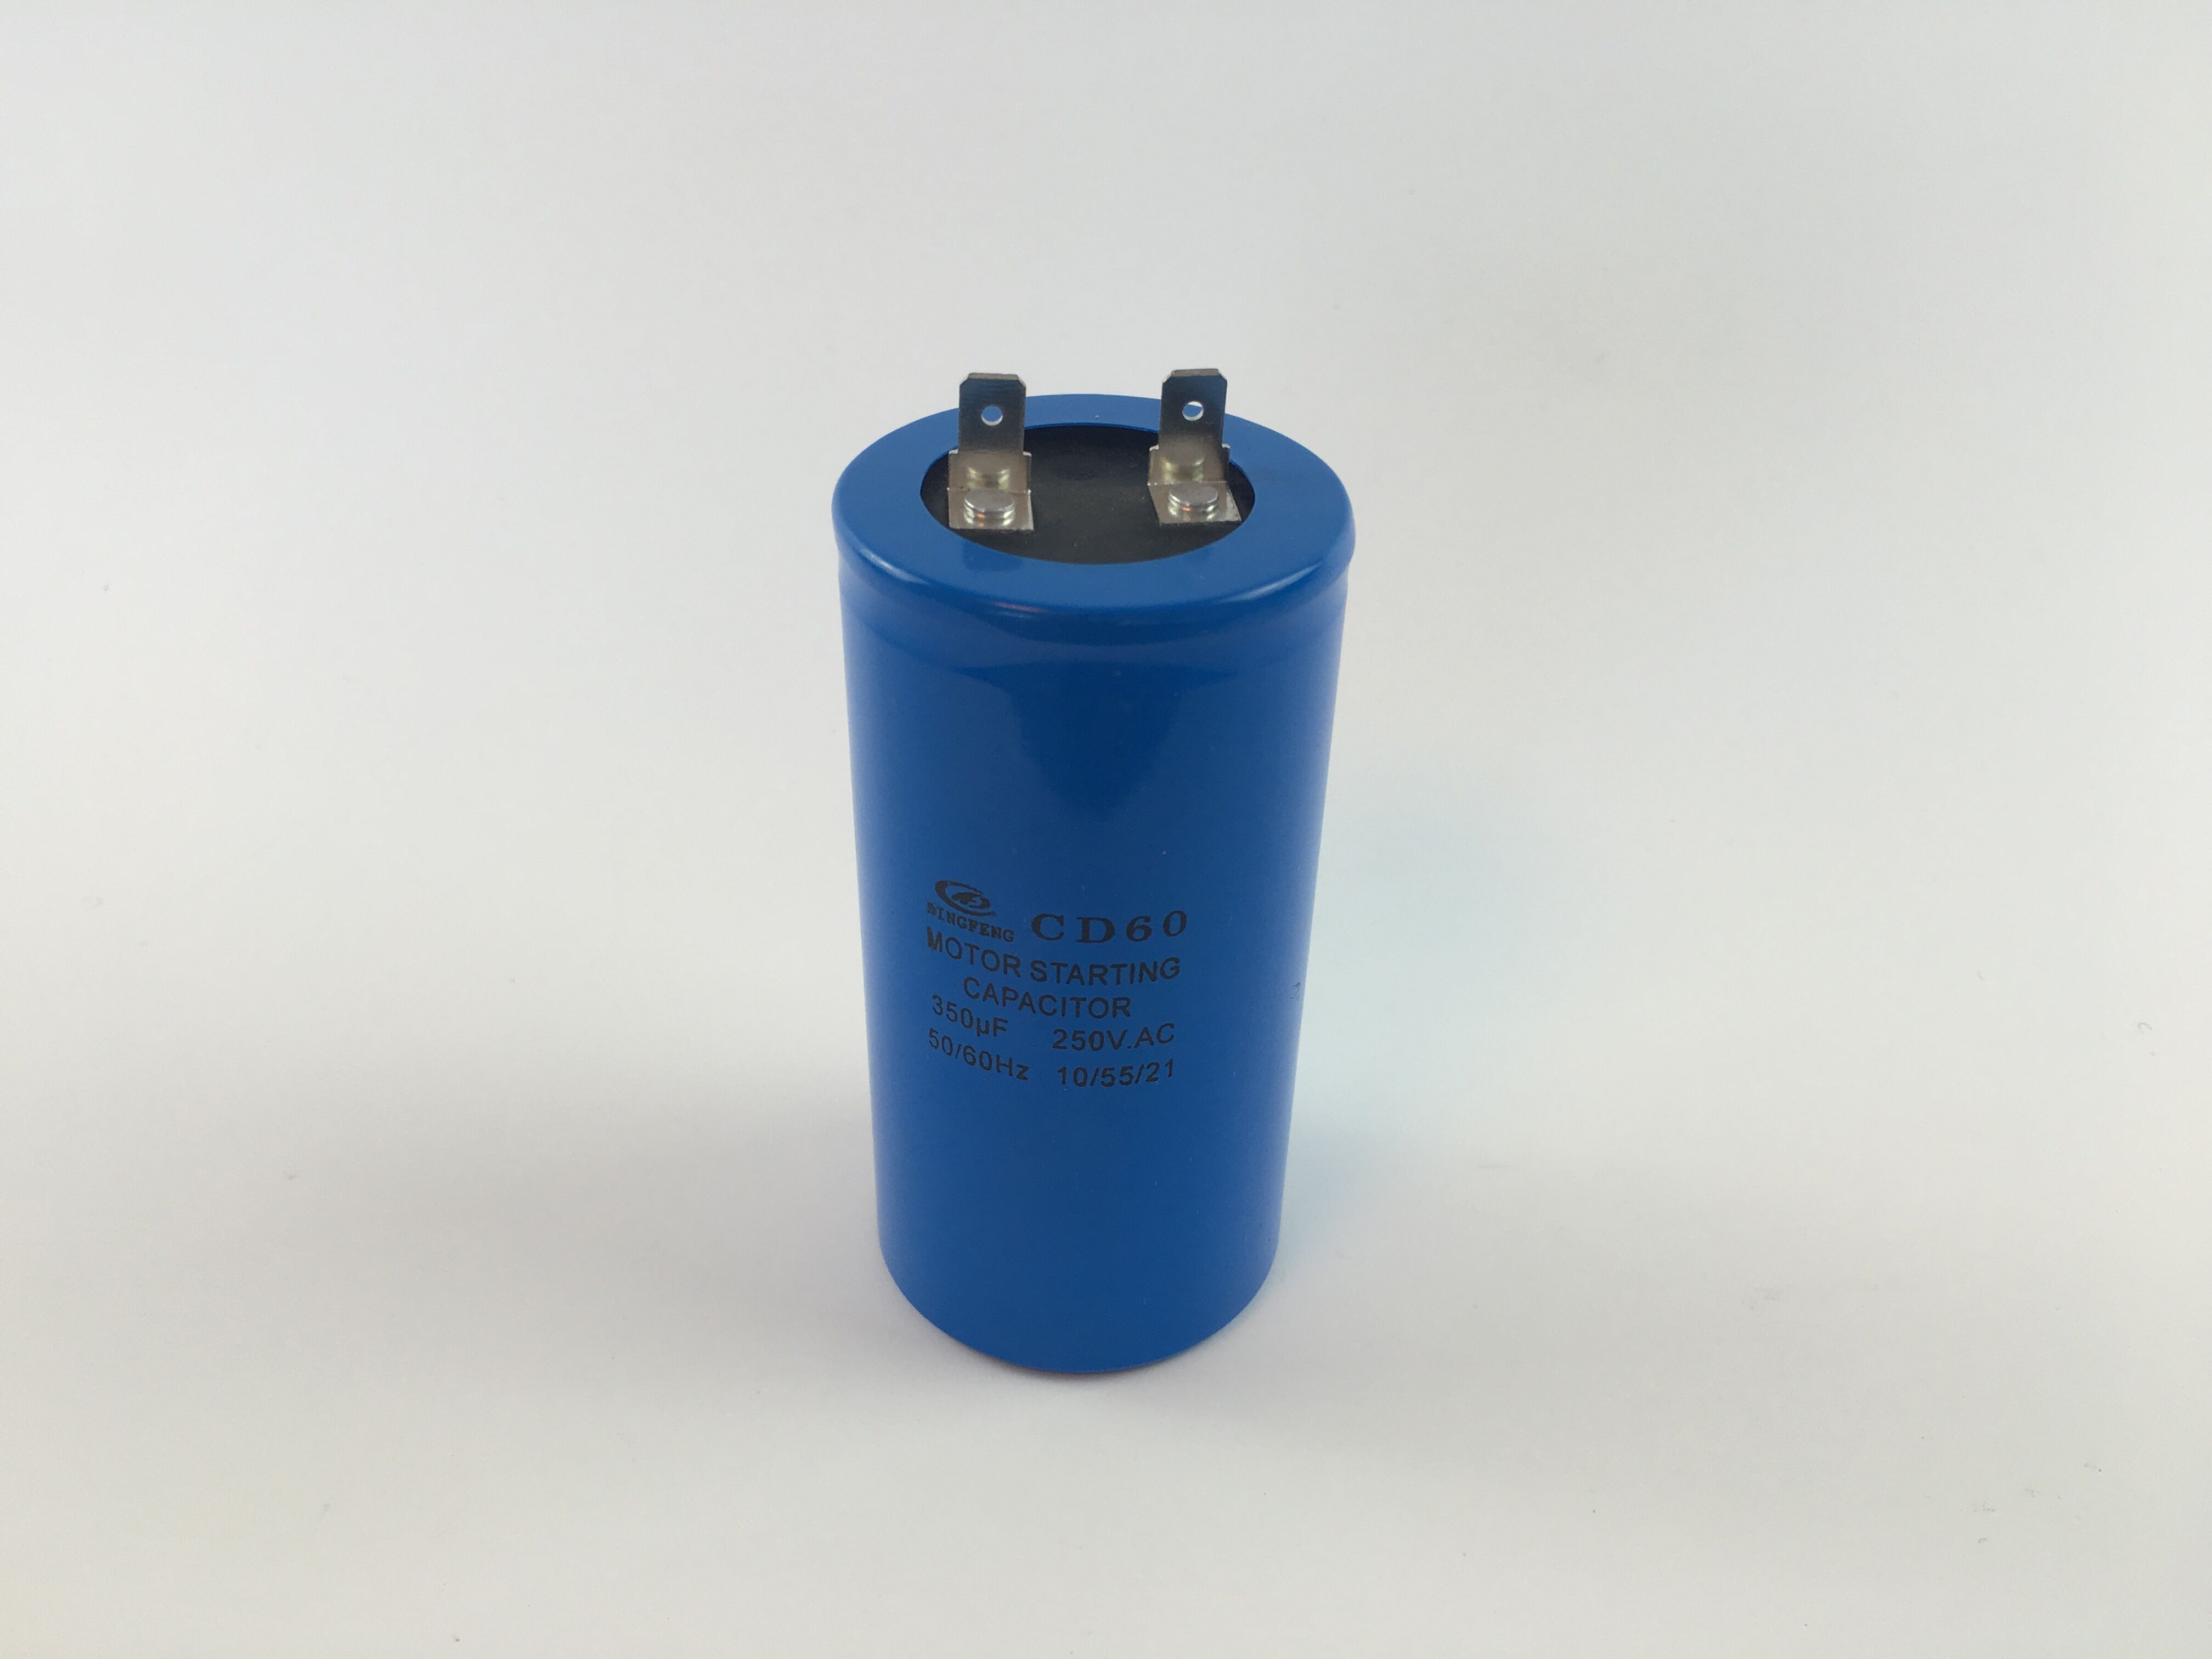 electrolytic capacitor cd60a ac motor starting capacitor